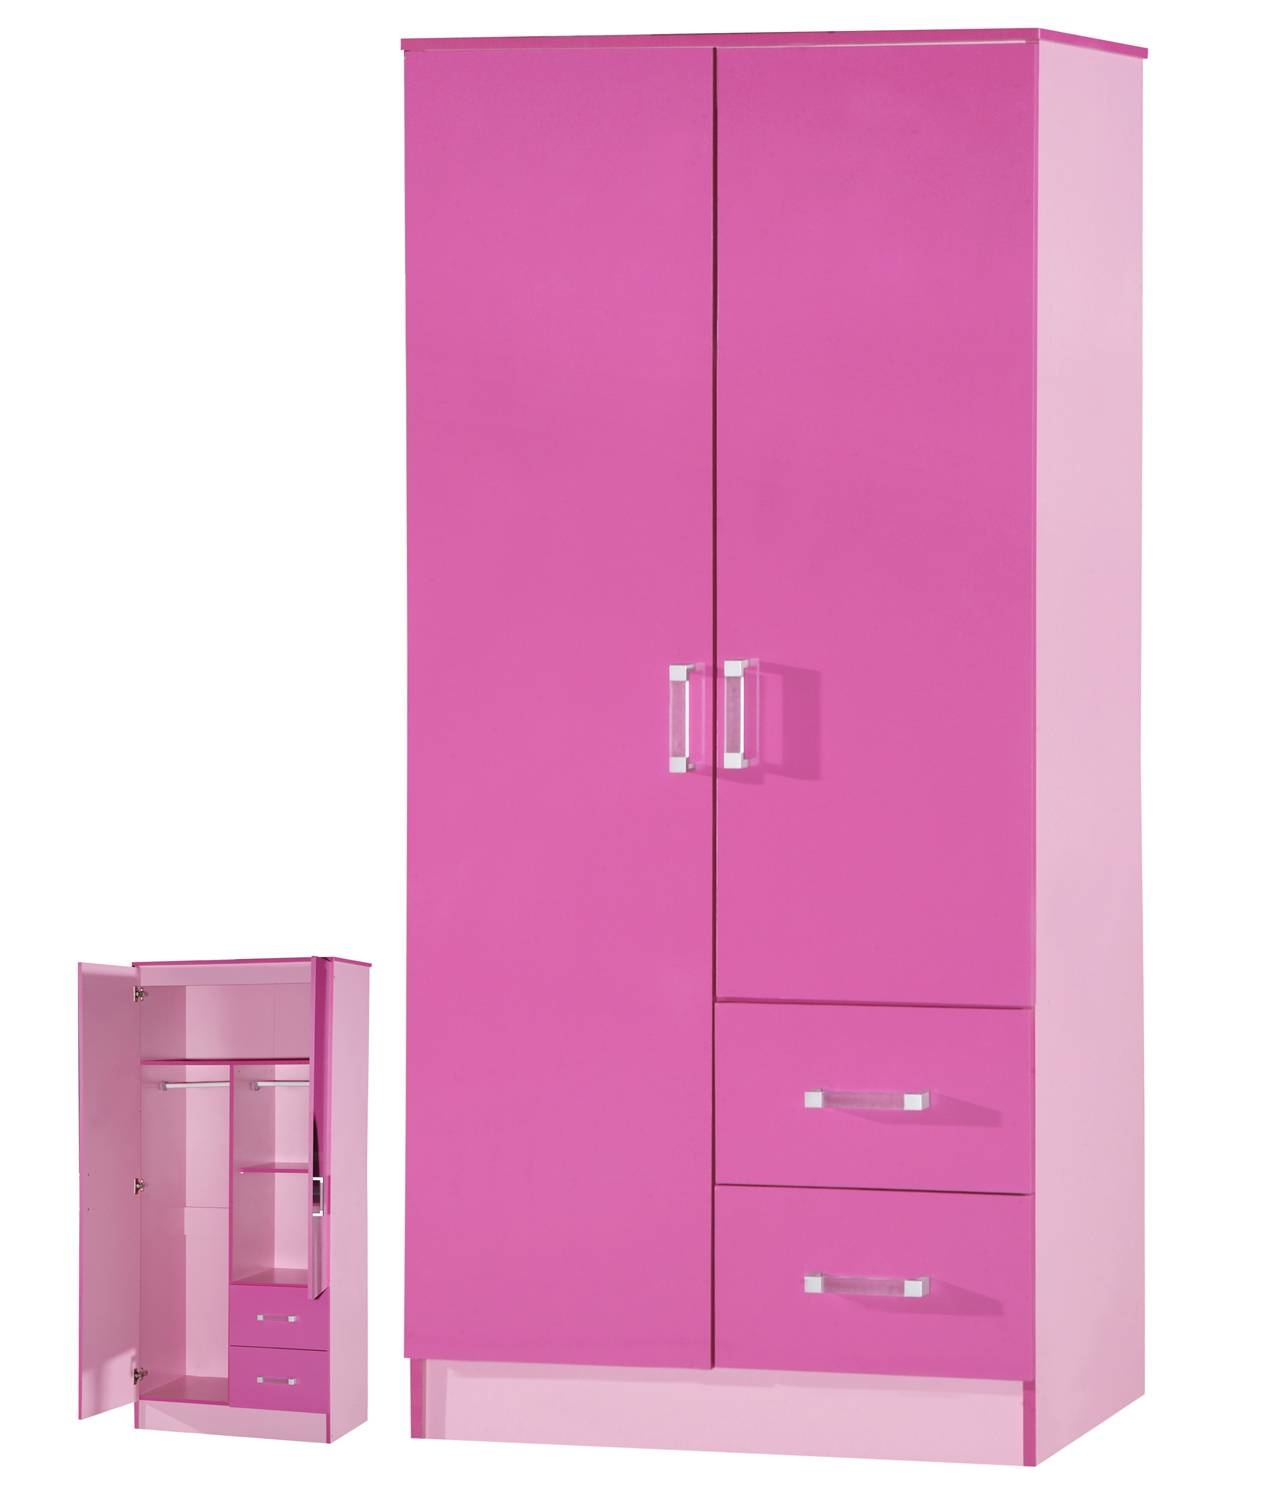 High Gloss Pink 2 Door 2 Drawer Wardrobe - Marina Kids Bedroom intended for Pink High Gloss Wardrobes (Image 4 of 15)